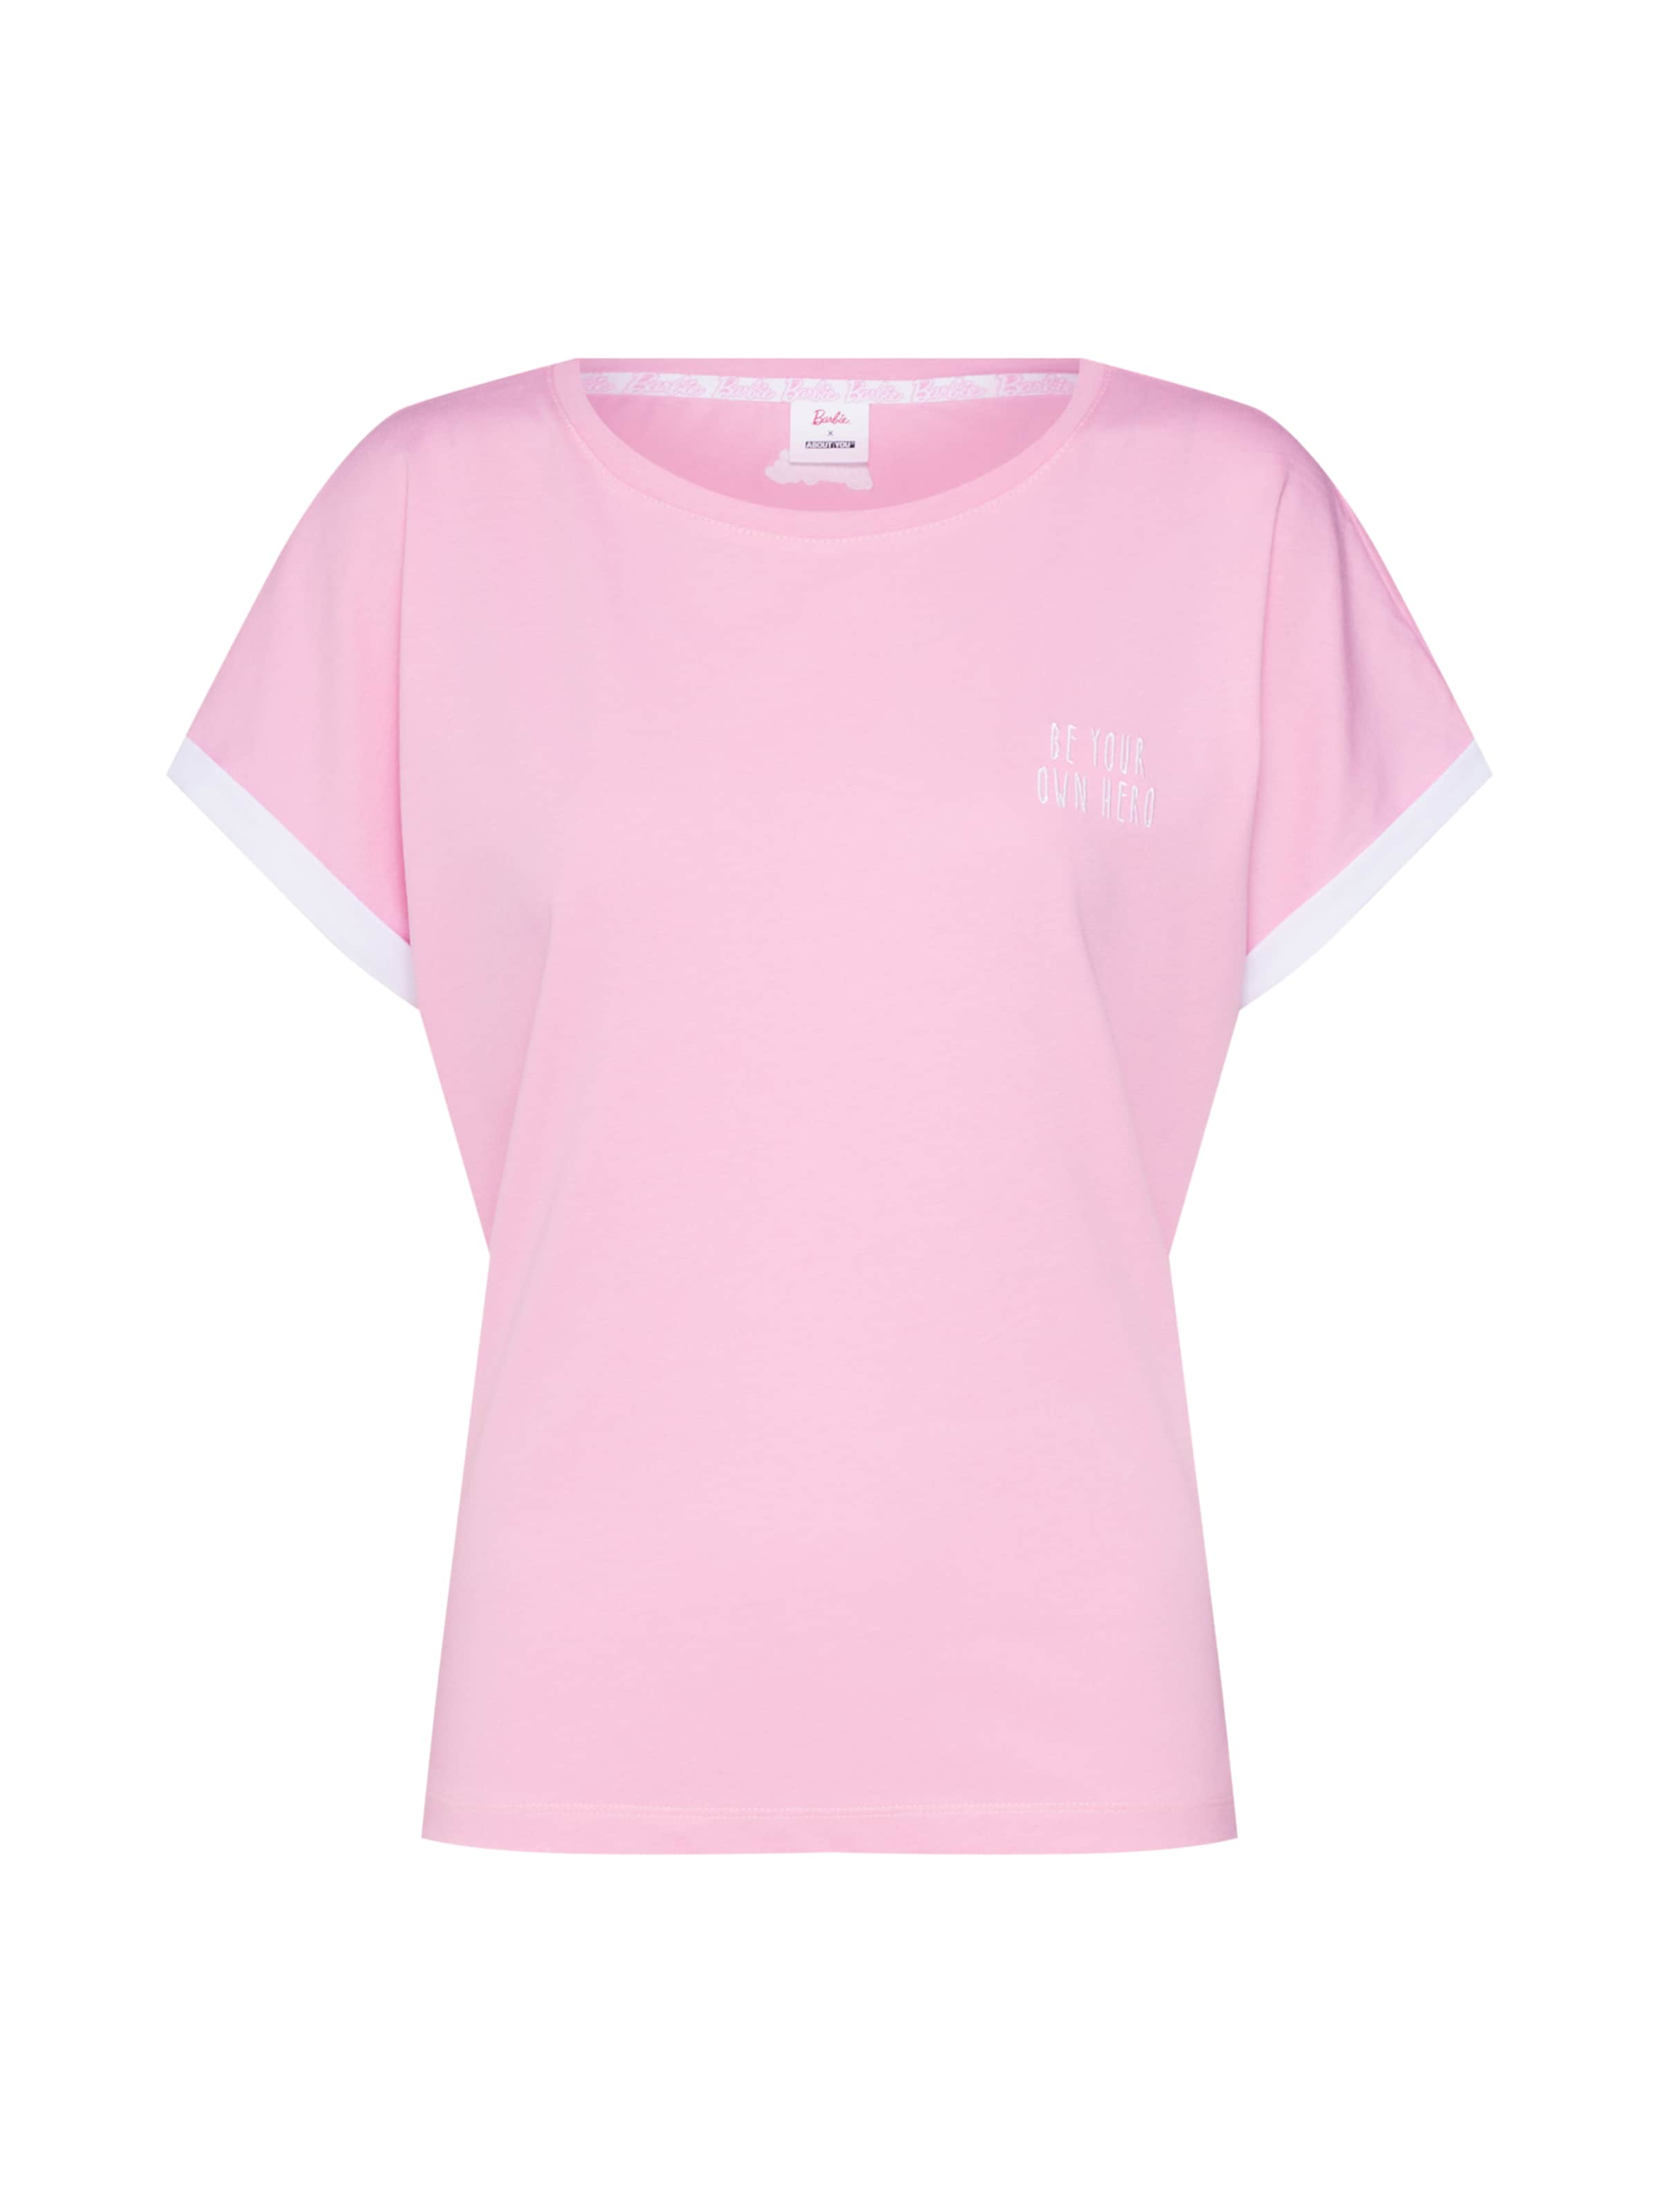 X 'fabienne' Pink Shirt About You Barbie In Y6g7yvfb